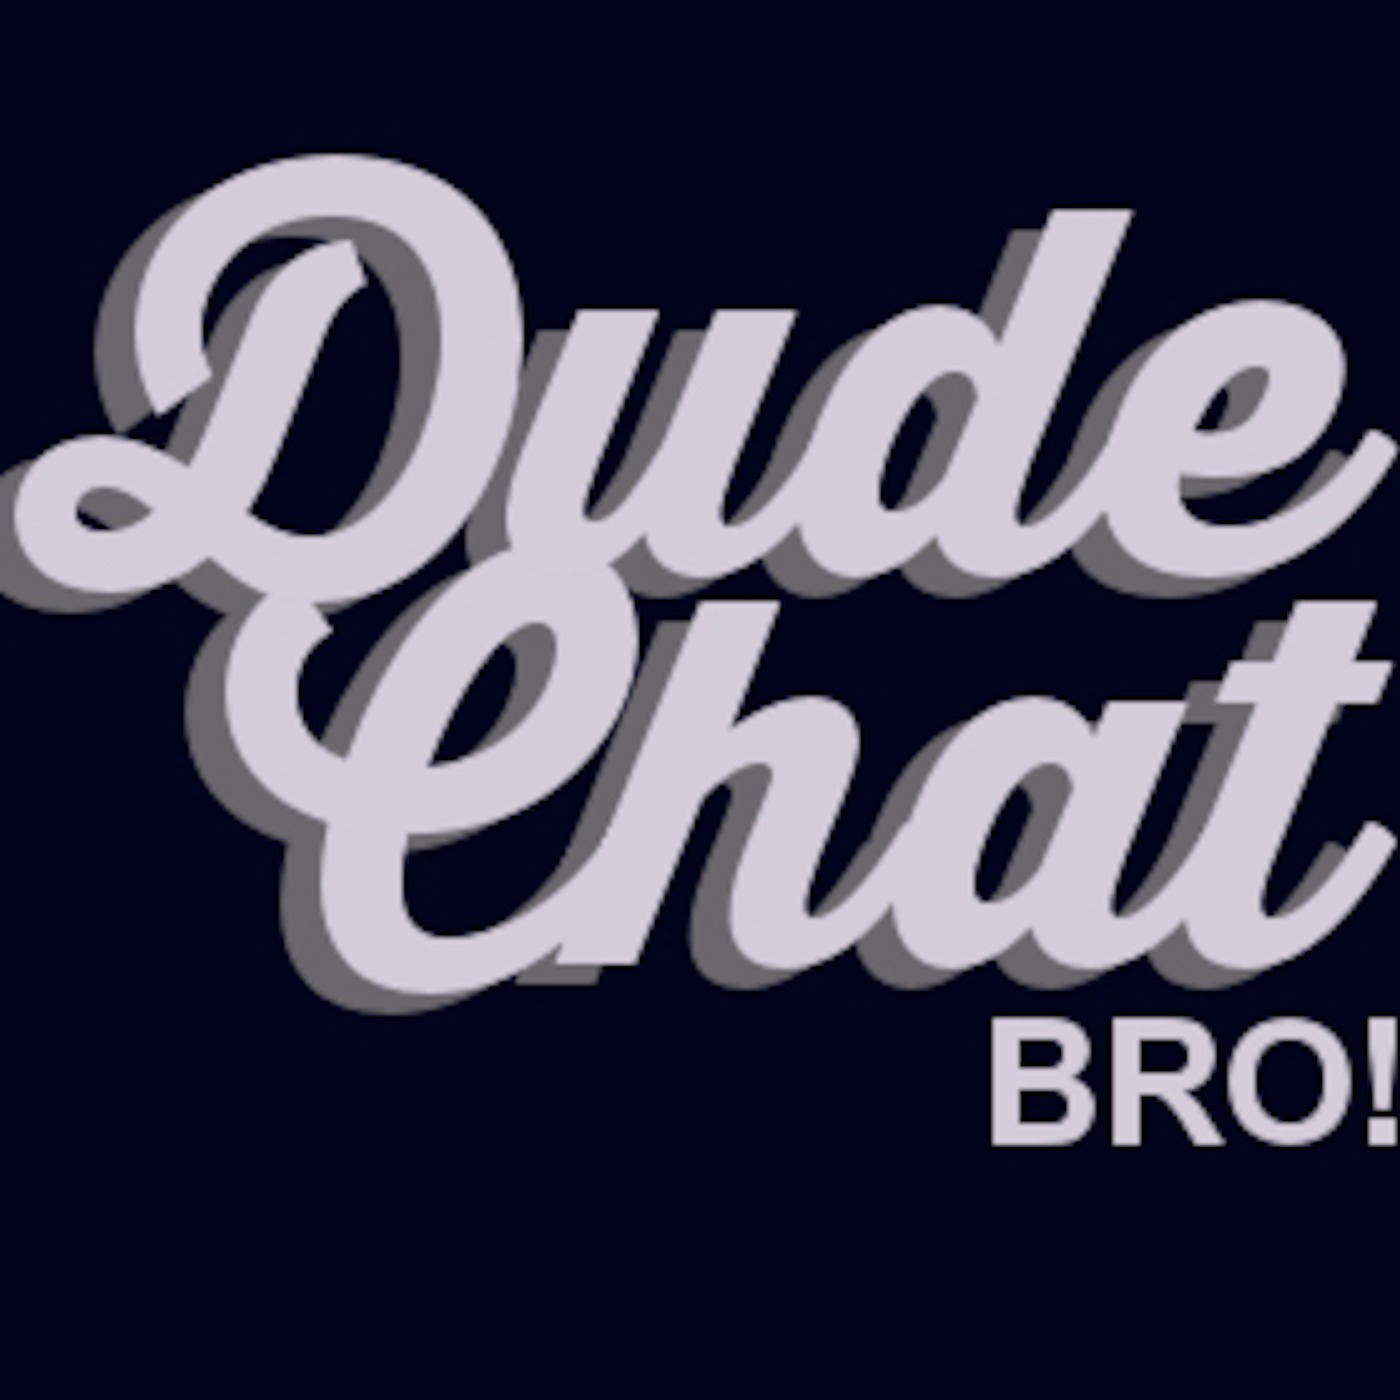 Dude Chat, Bro!